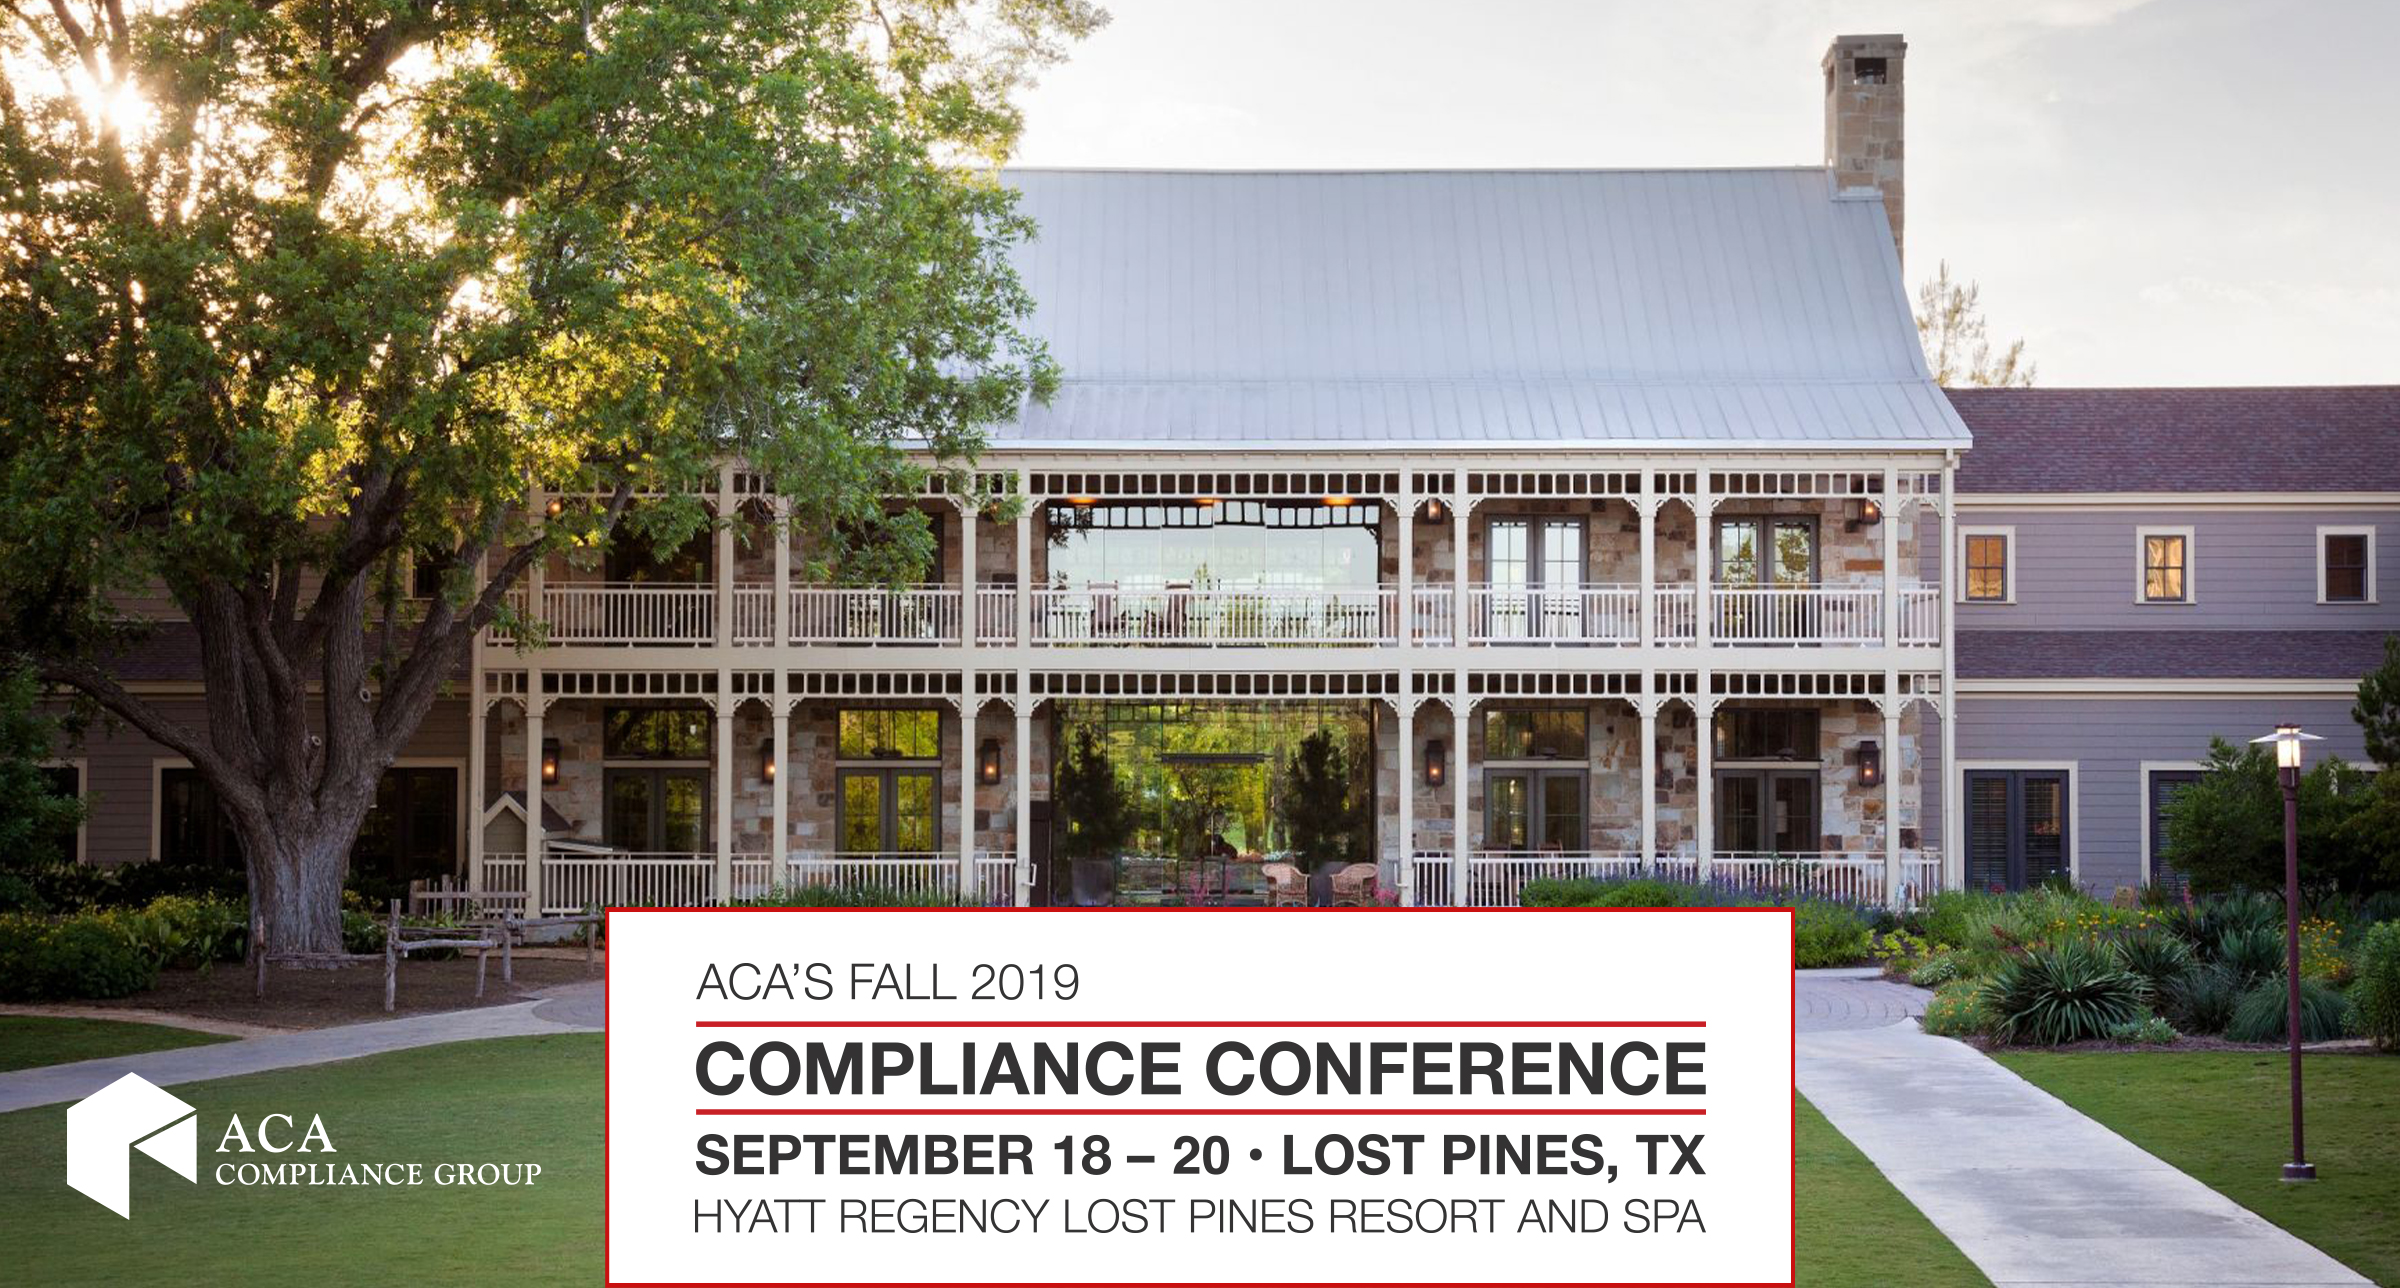 ACA's Fall 2019 Compliance Conference